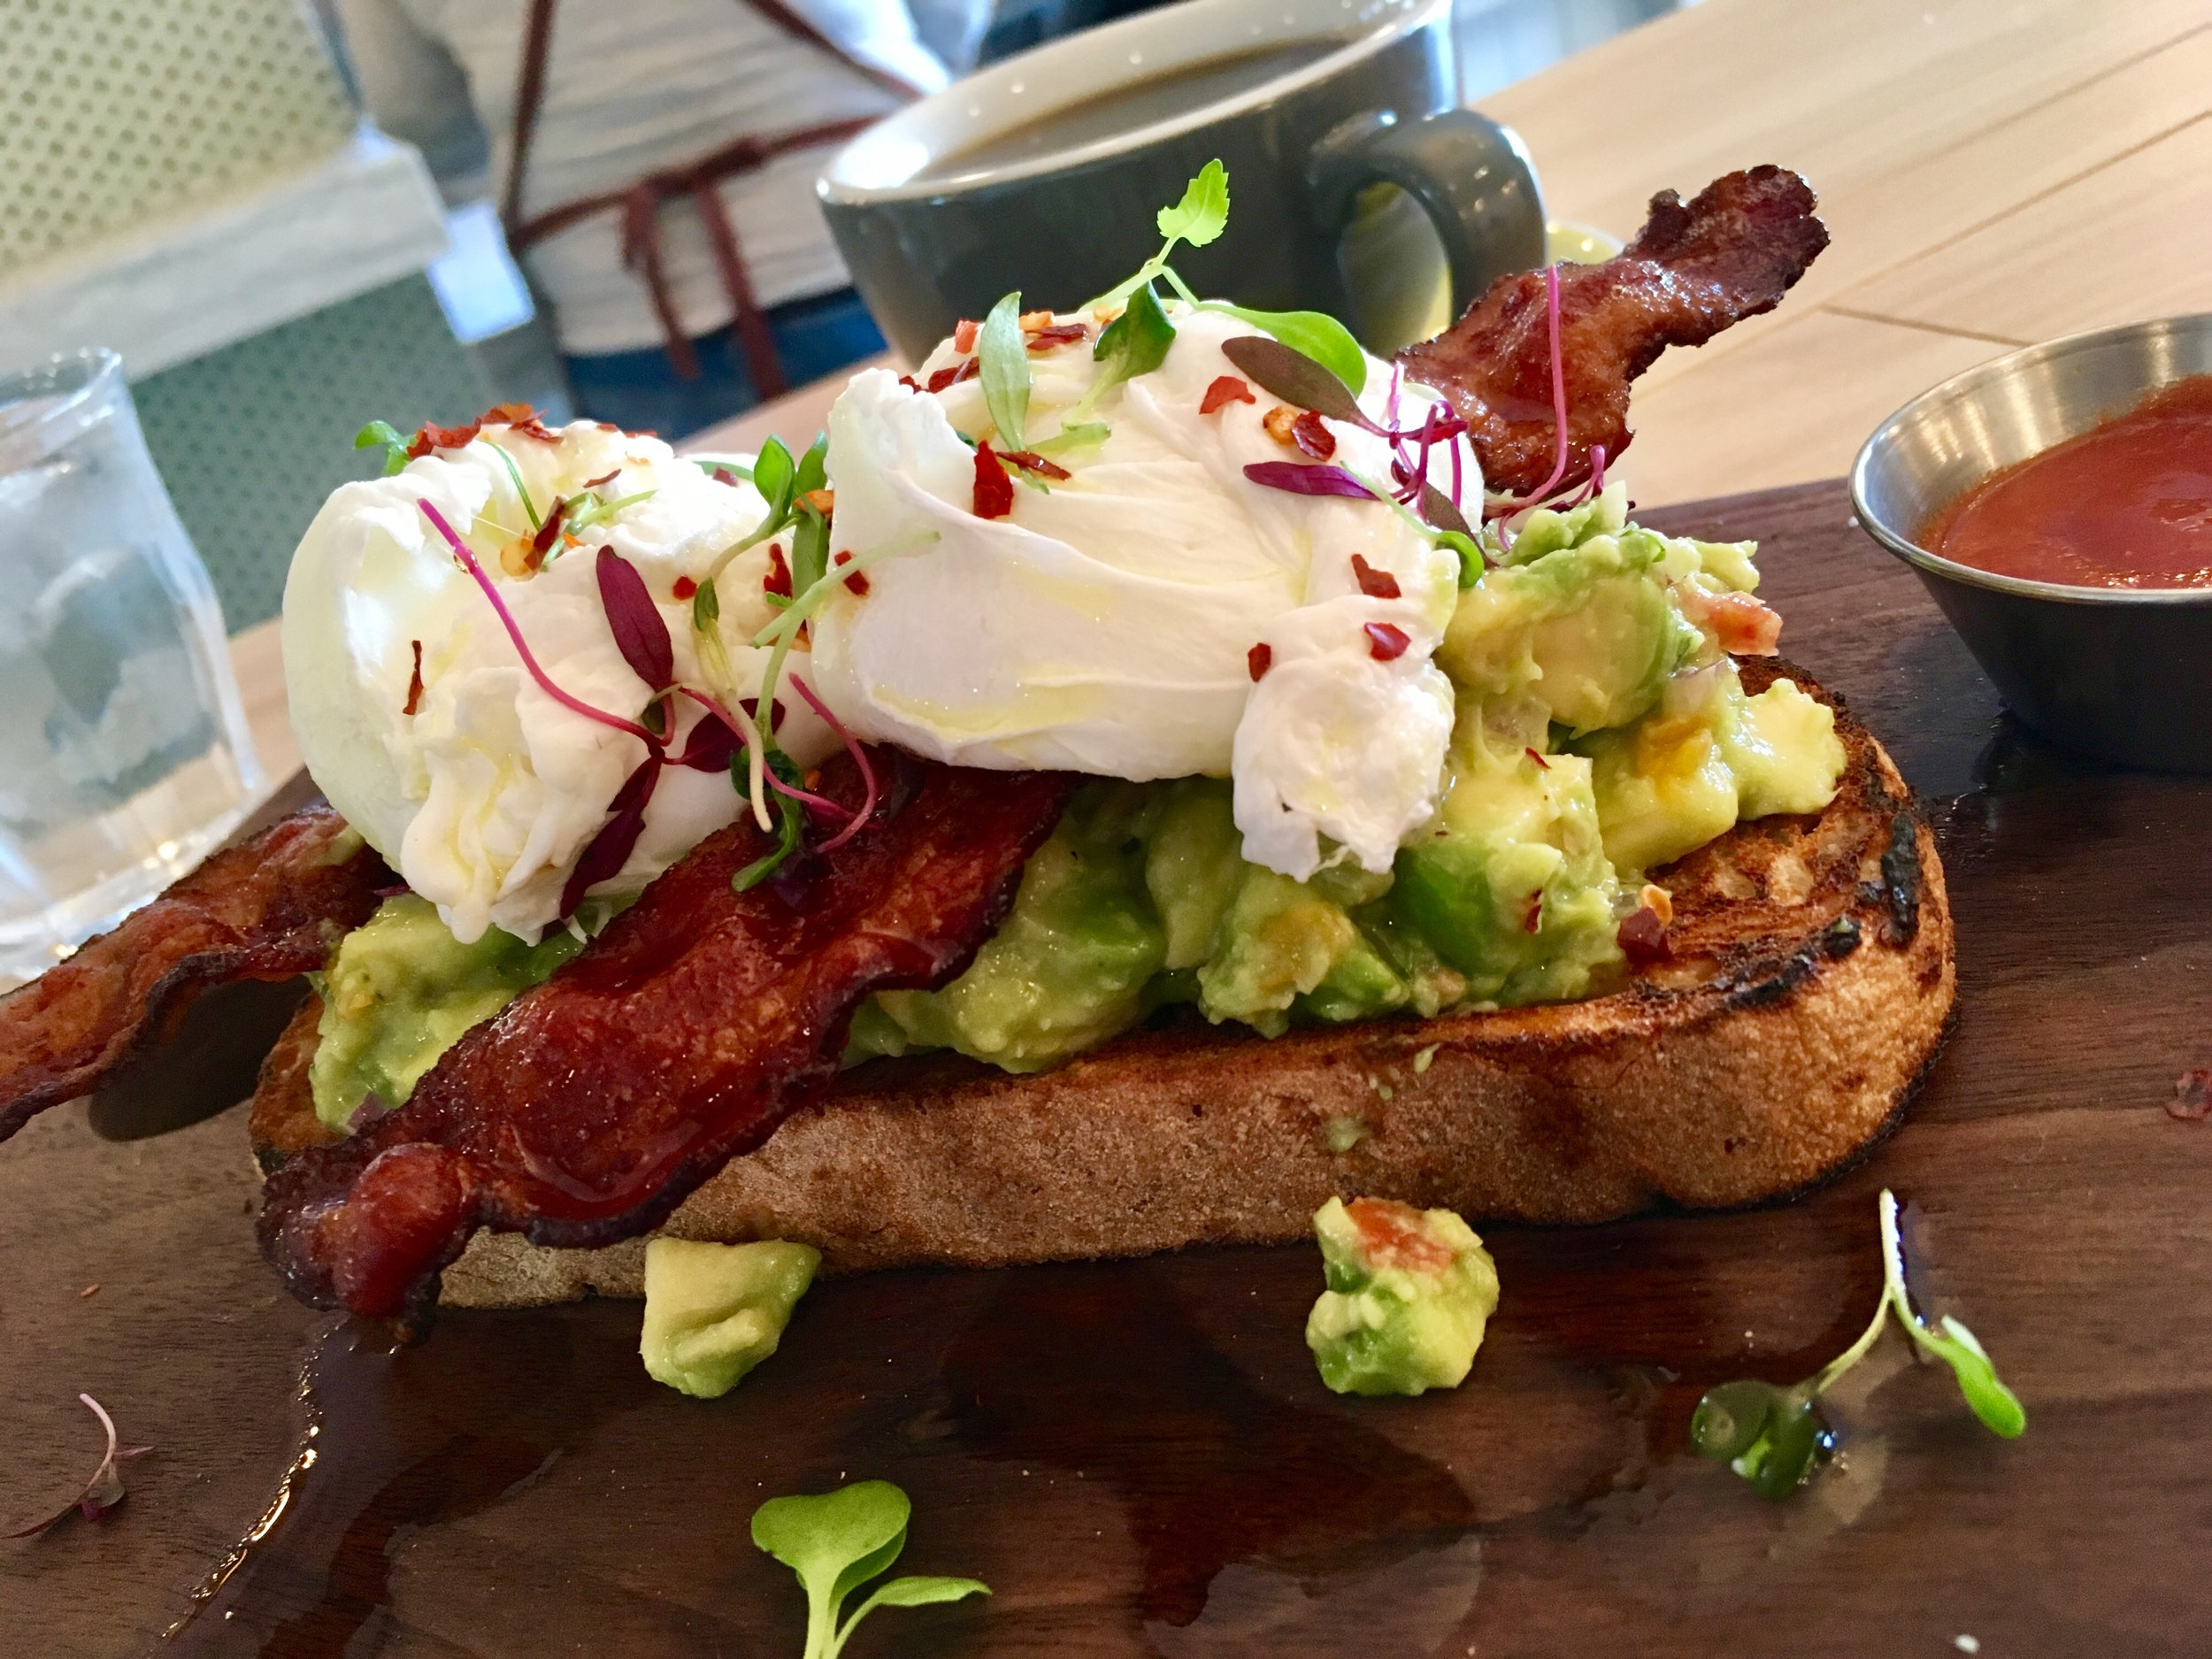 The avacodo toast with bacon added from Harvest.